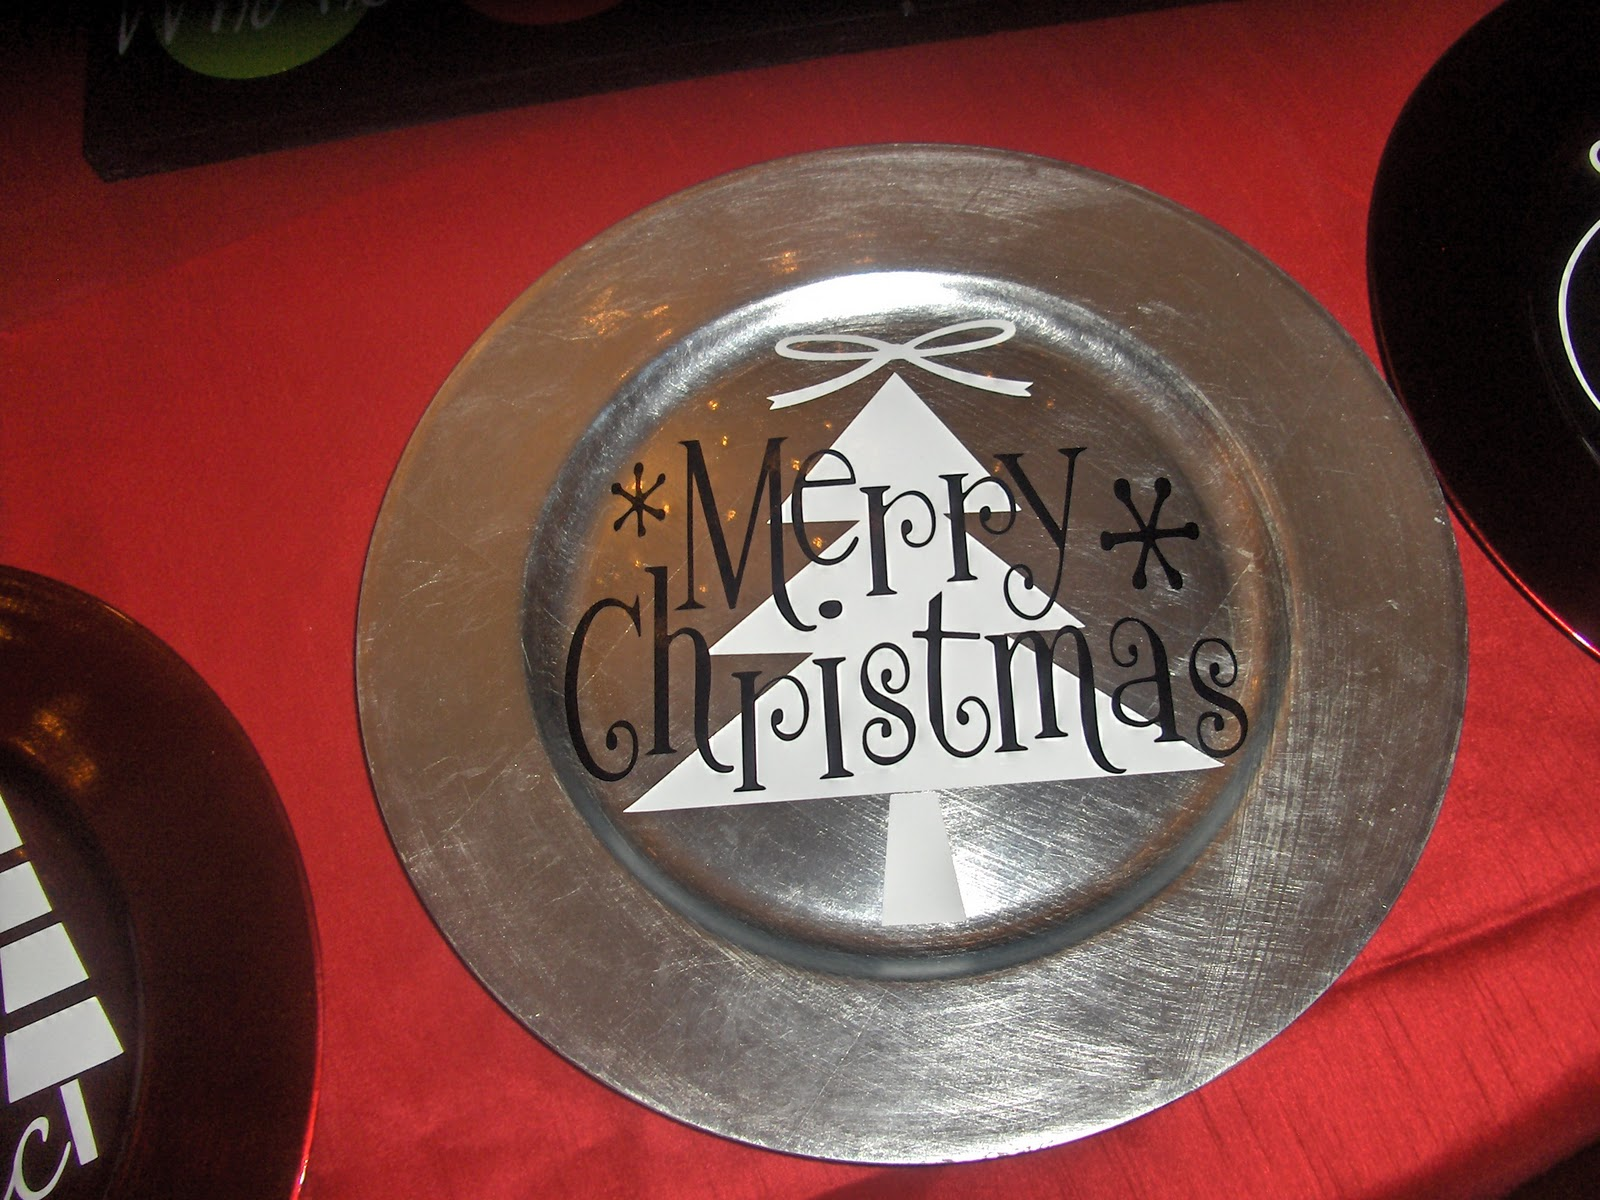 stikmup designs a collection of some christmas vinyl lettering projects cabinet doors tiles charger plates and subway art - Christmas Charger Plates